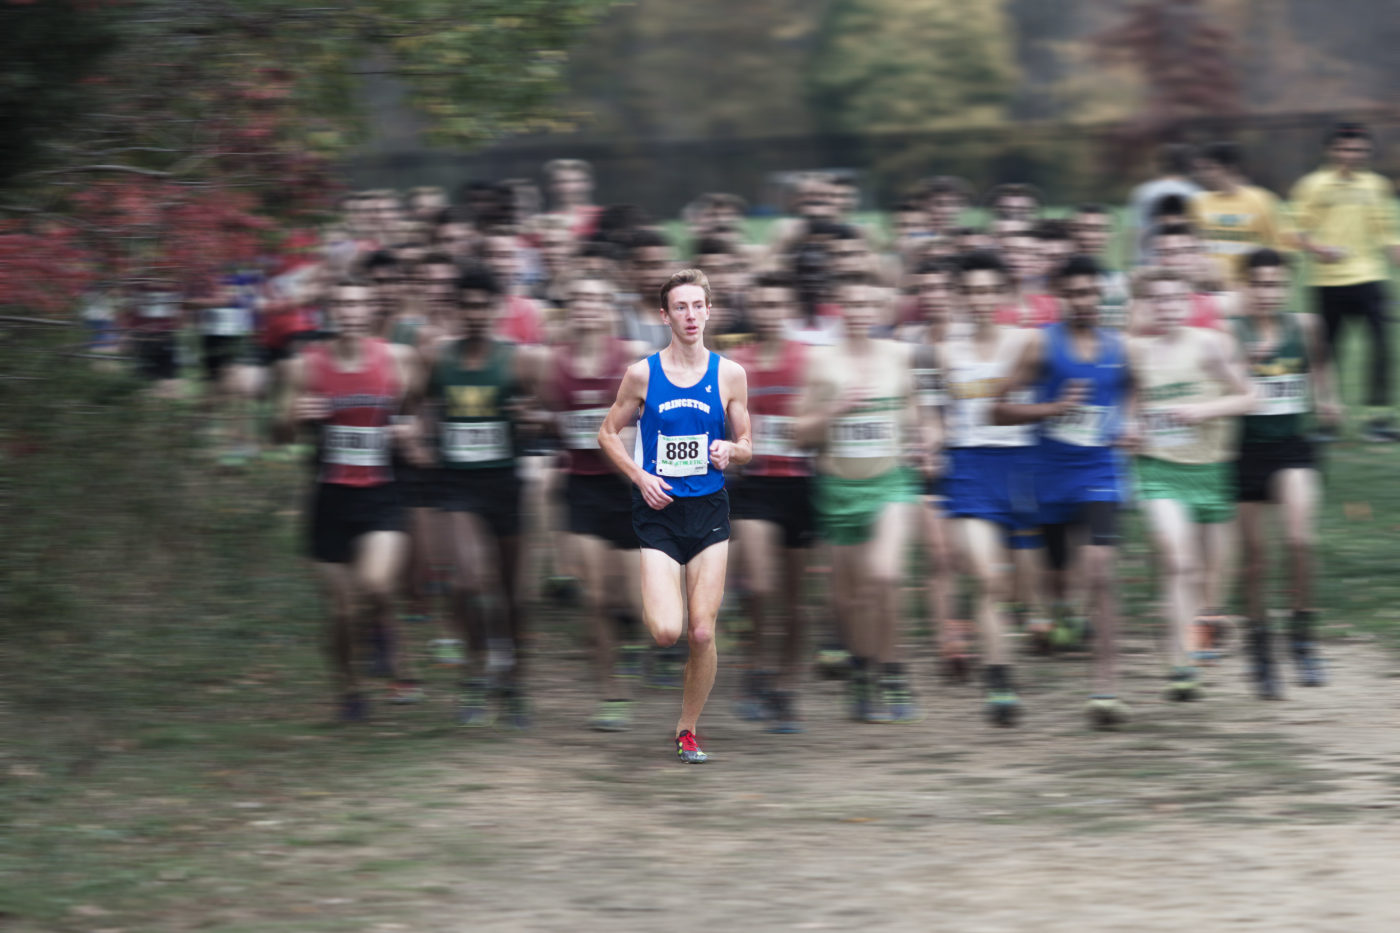 Alex Roth '17 leads the race at the NJSIAA Central Group IV sectional meet at Thompson Park on November 7. Photo Illustration: Nathan Drezner